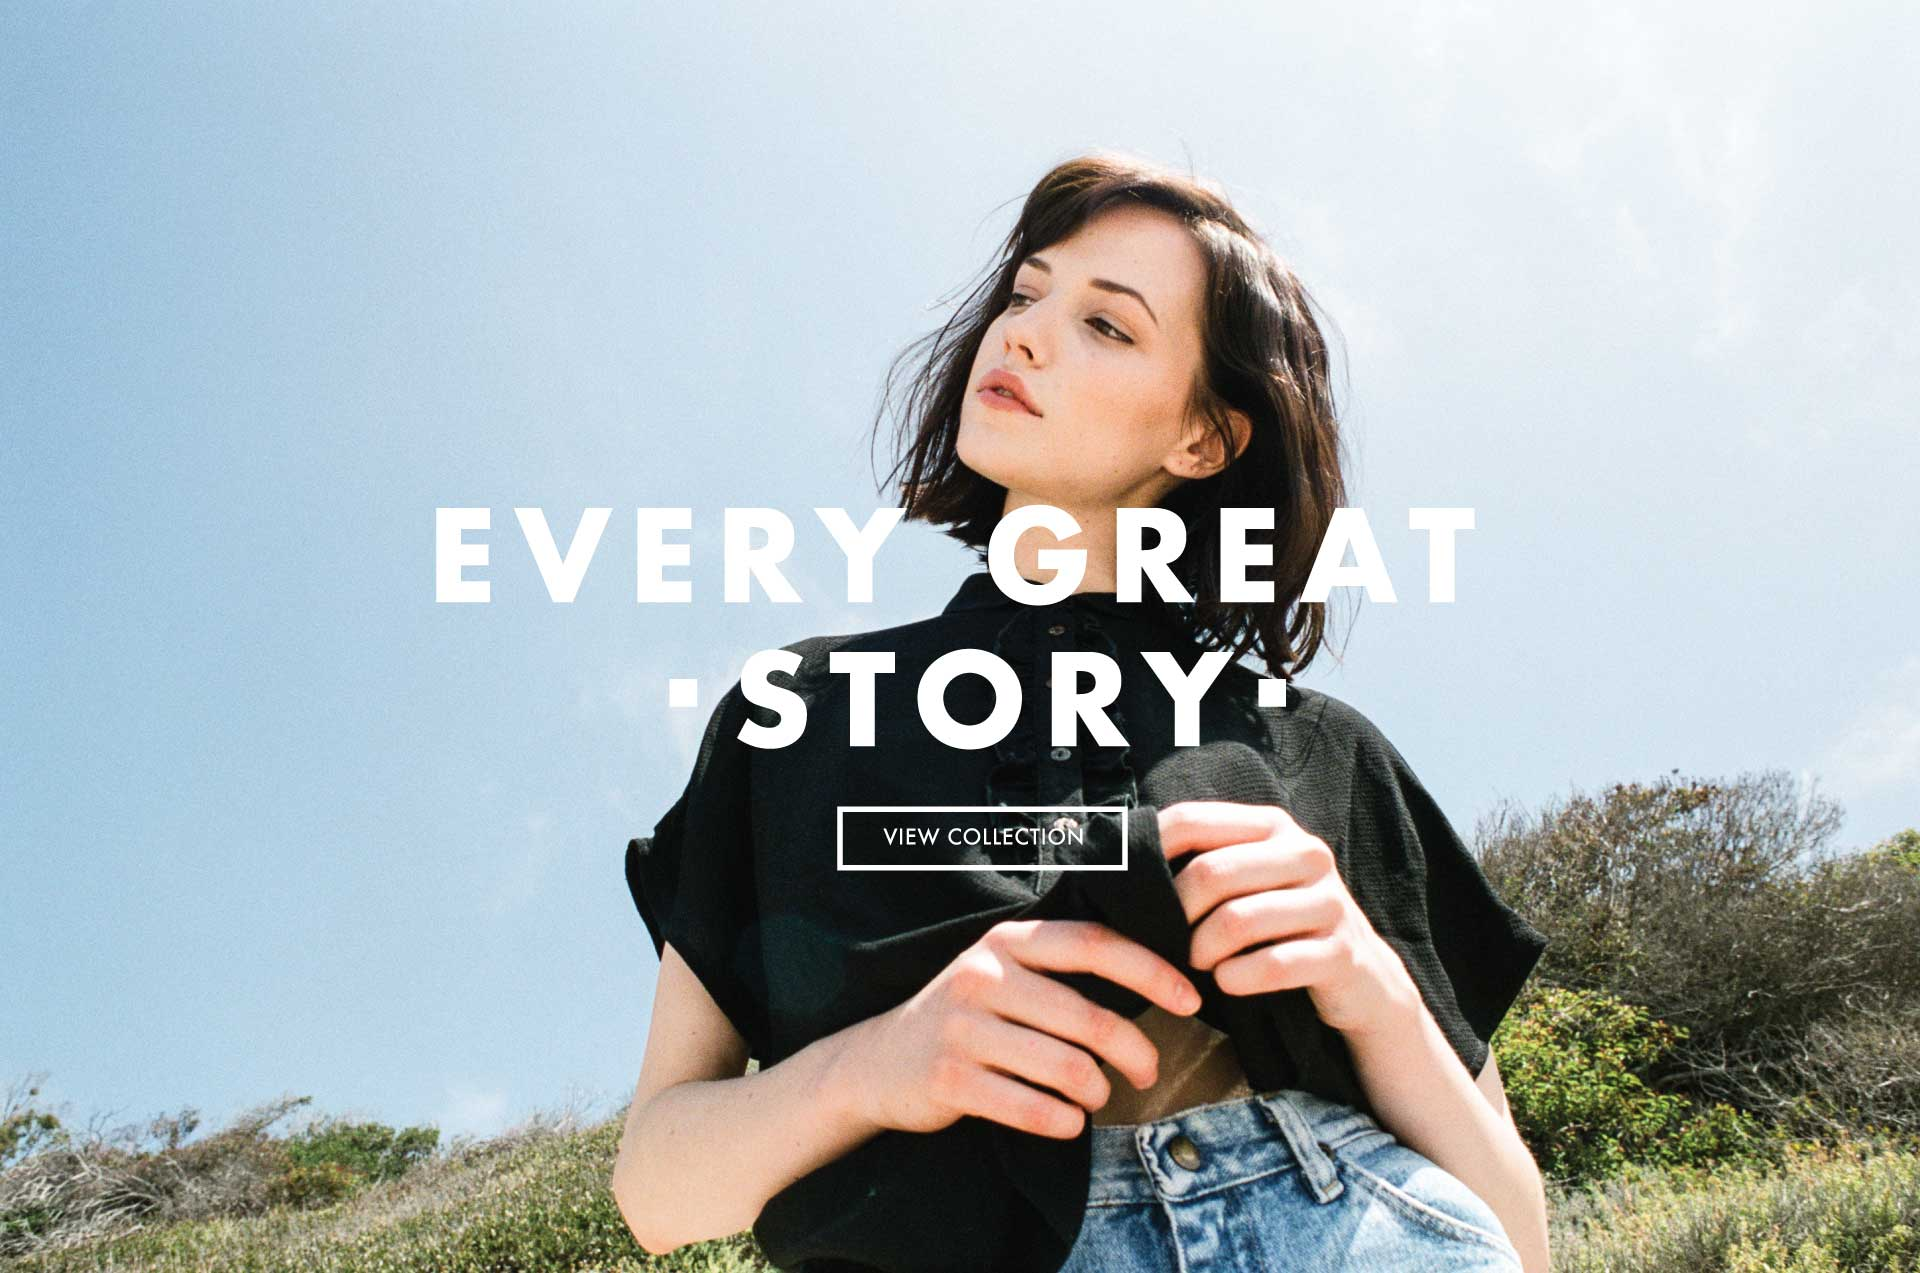 Every Great Story